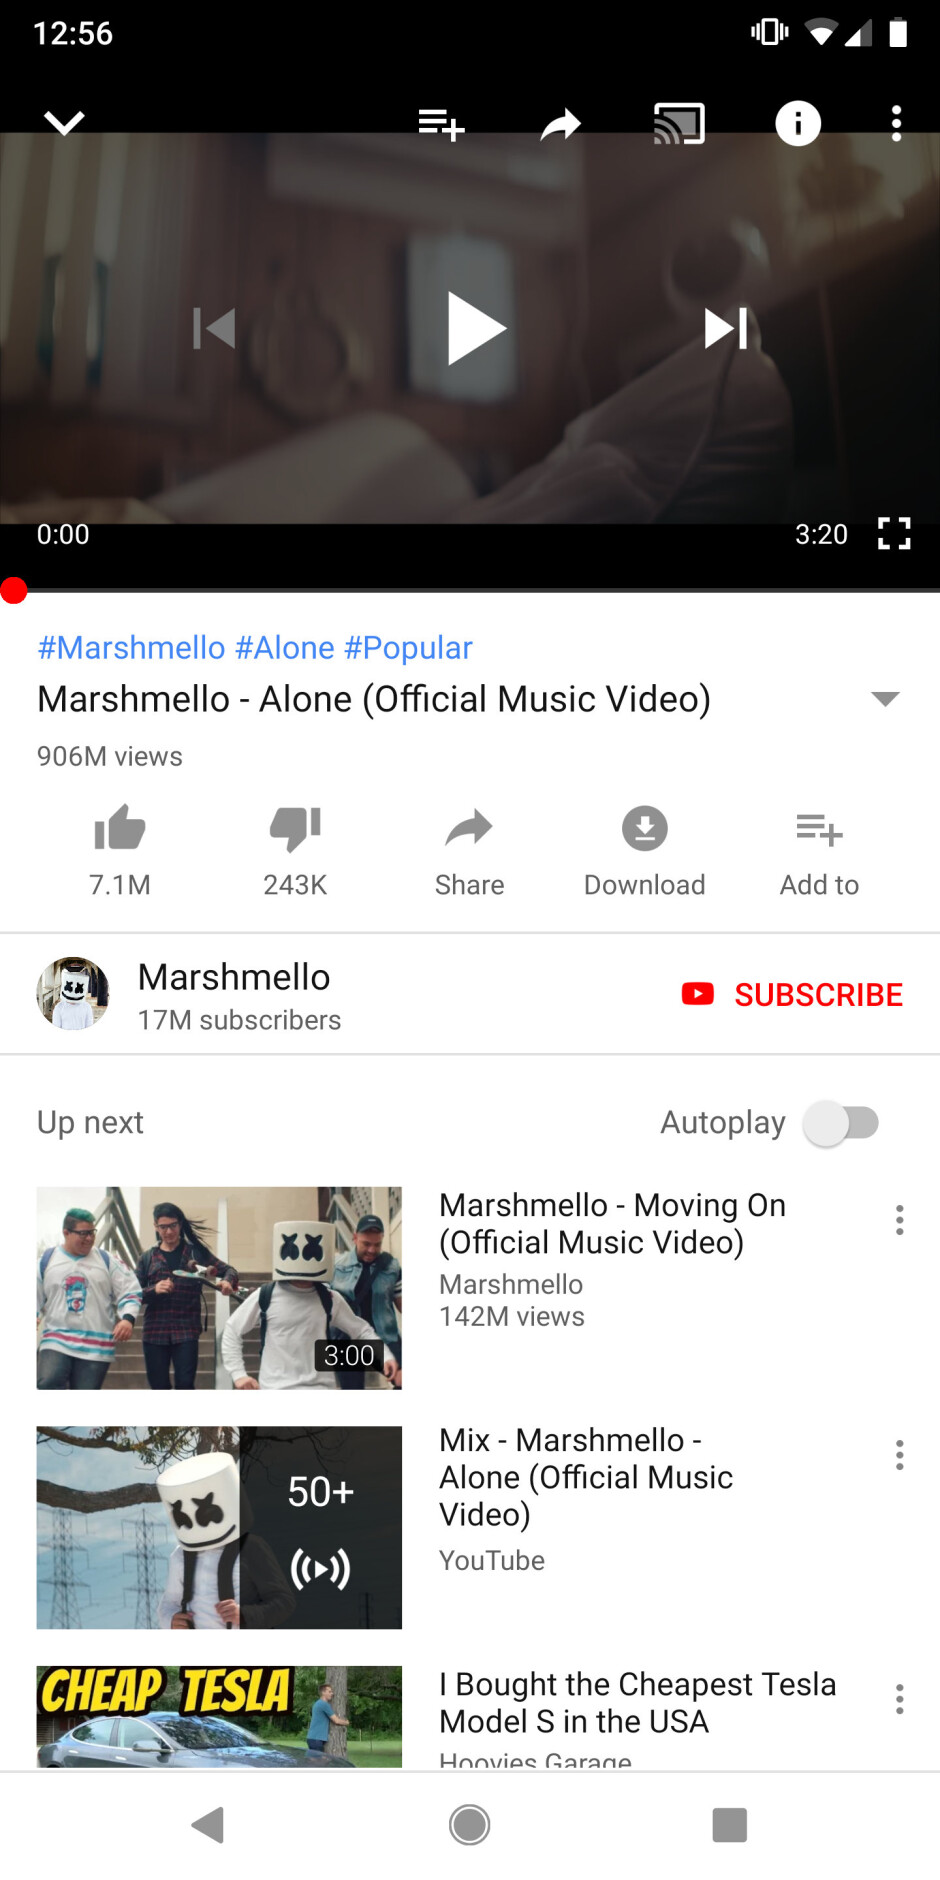 YouTube update adds hashtags above video titles, makes search easier